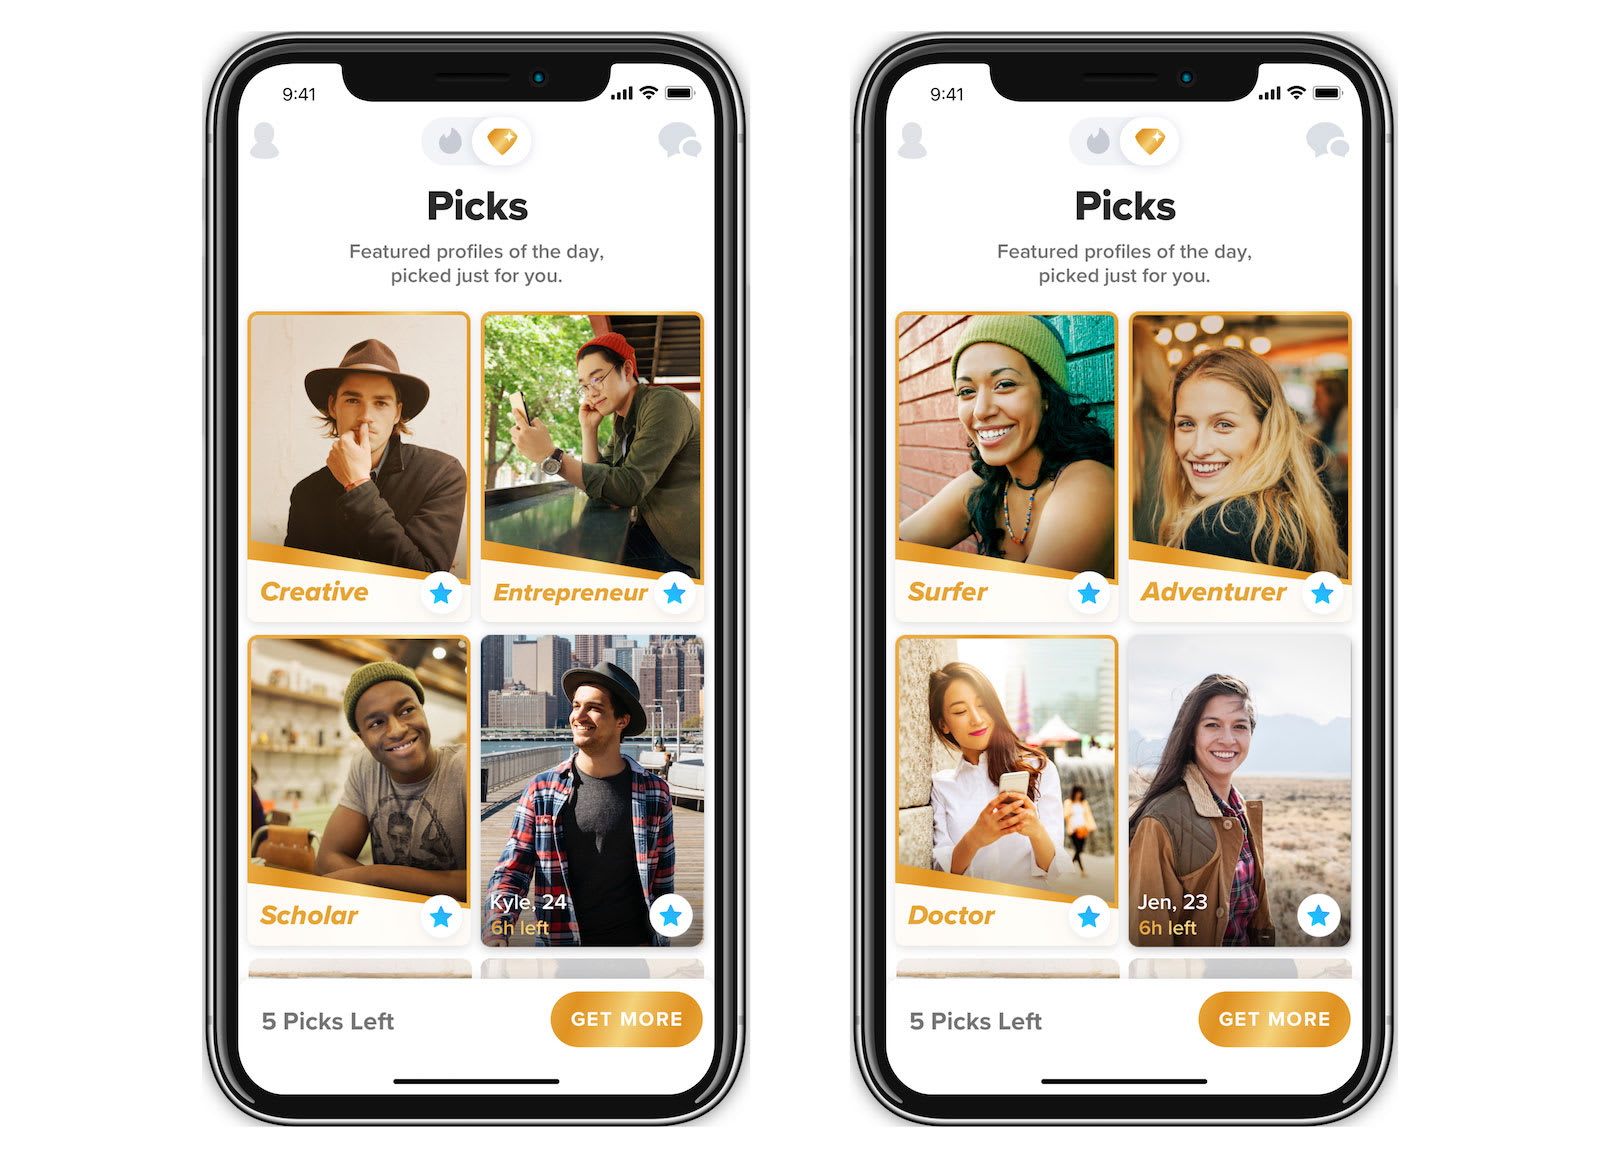 Tinder tests a 'Picks' feature to save you from endless swiping